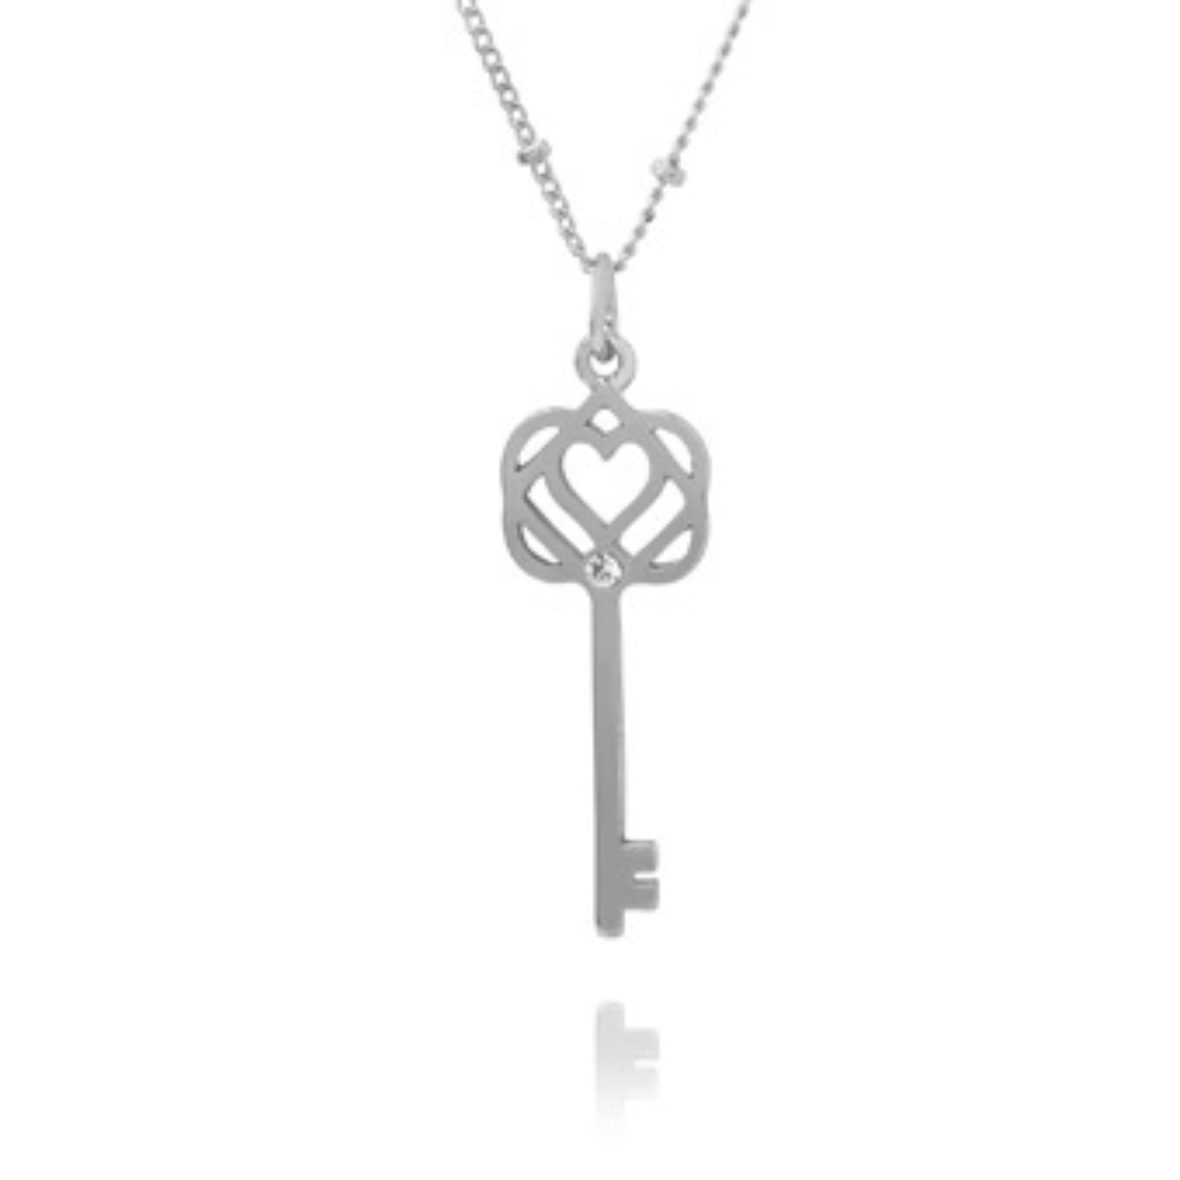 Symbolic jewellery meanings charm meanings silver key charm necklace buycottarizona Choice Image